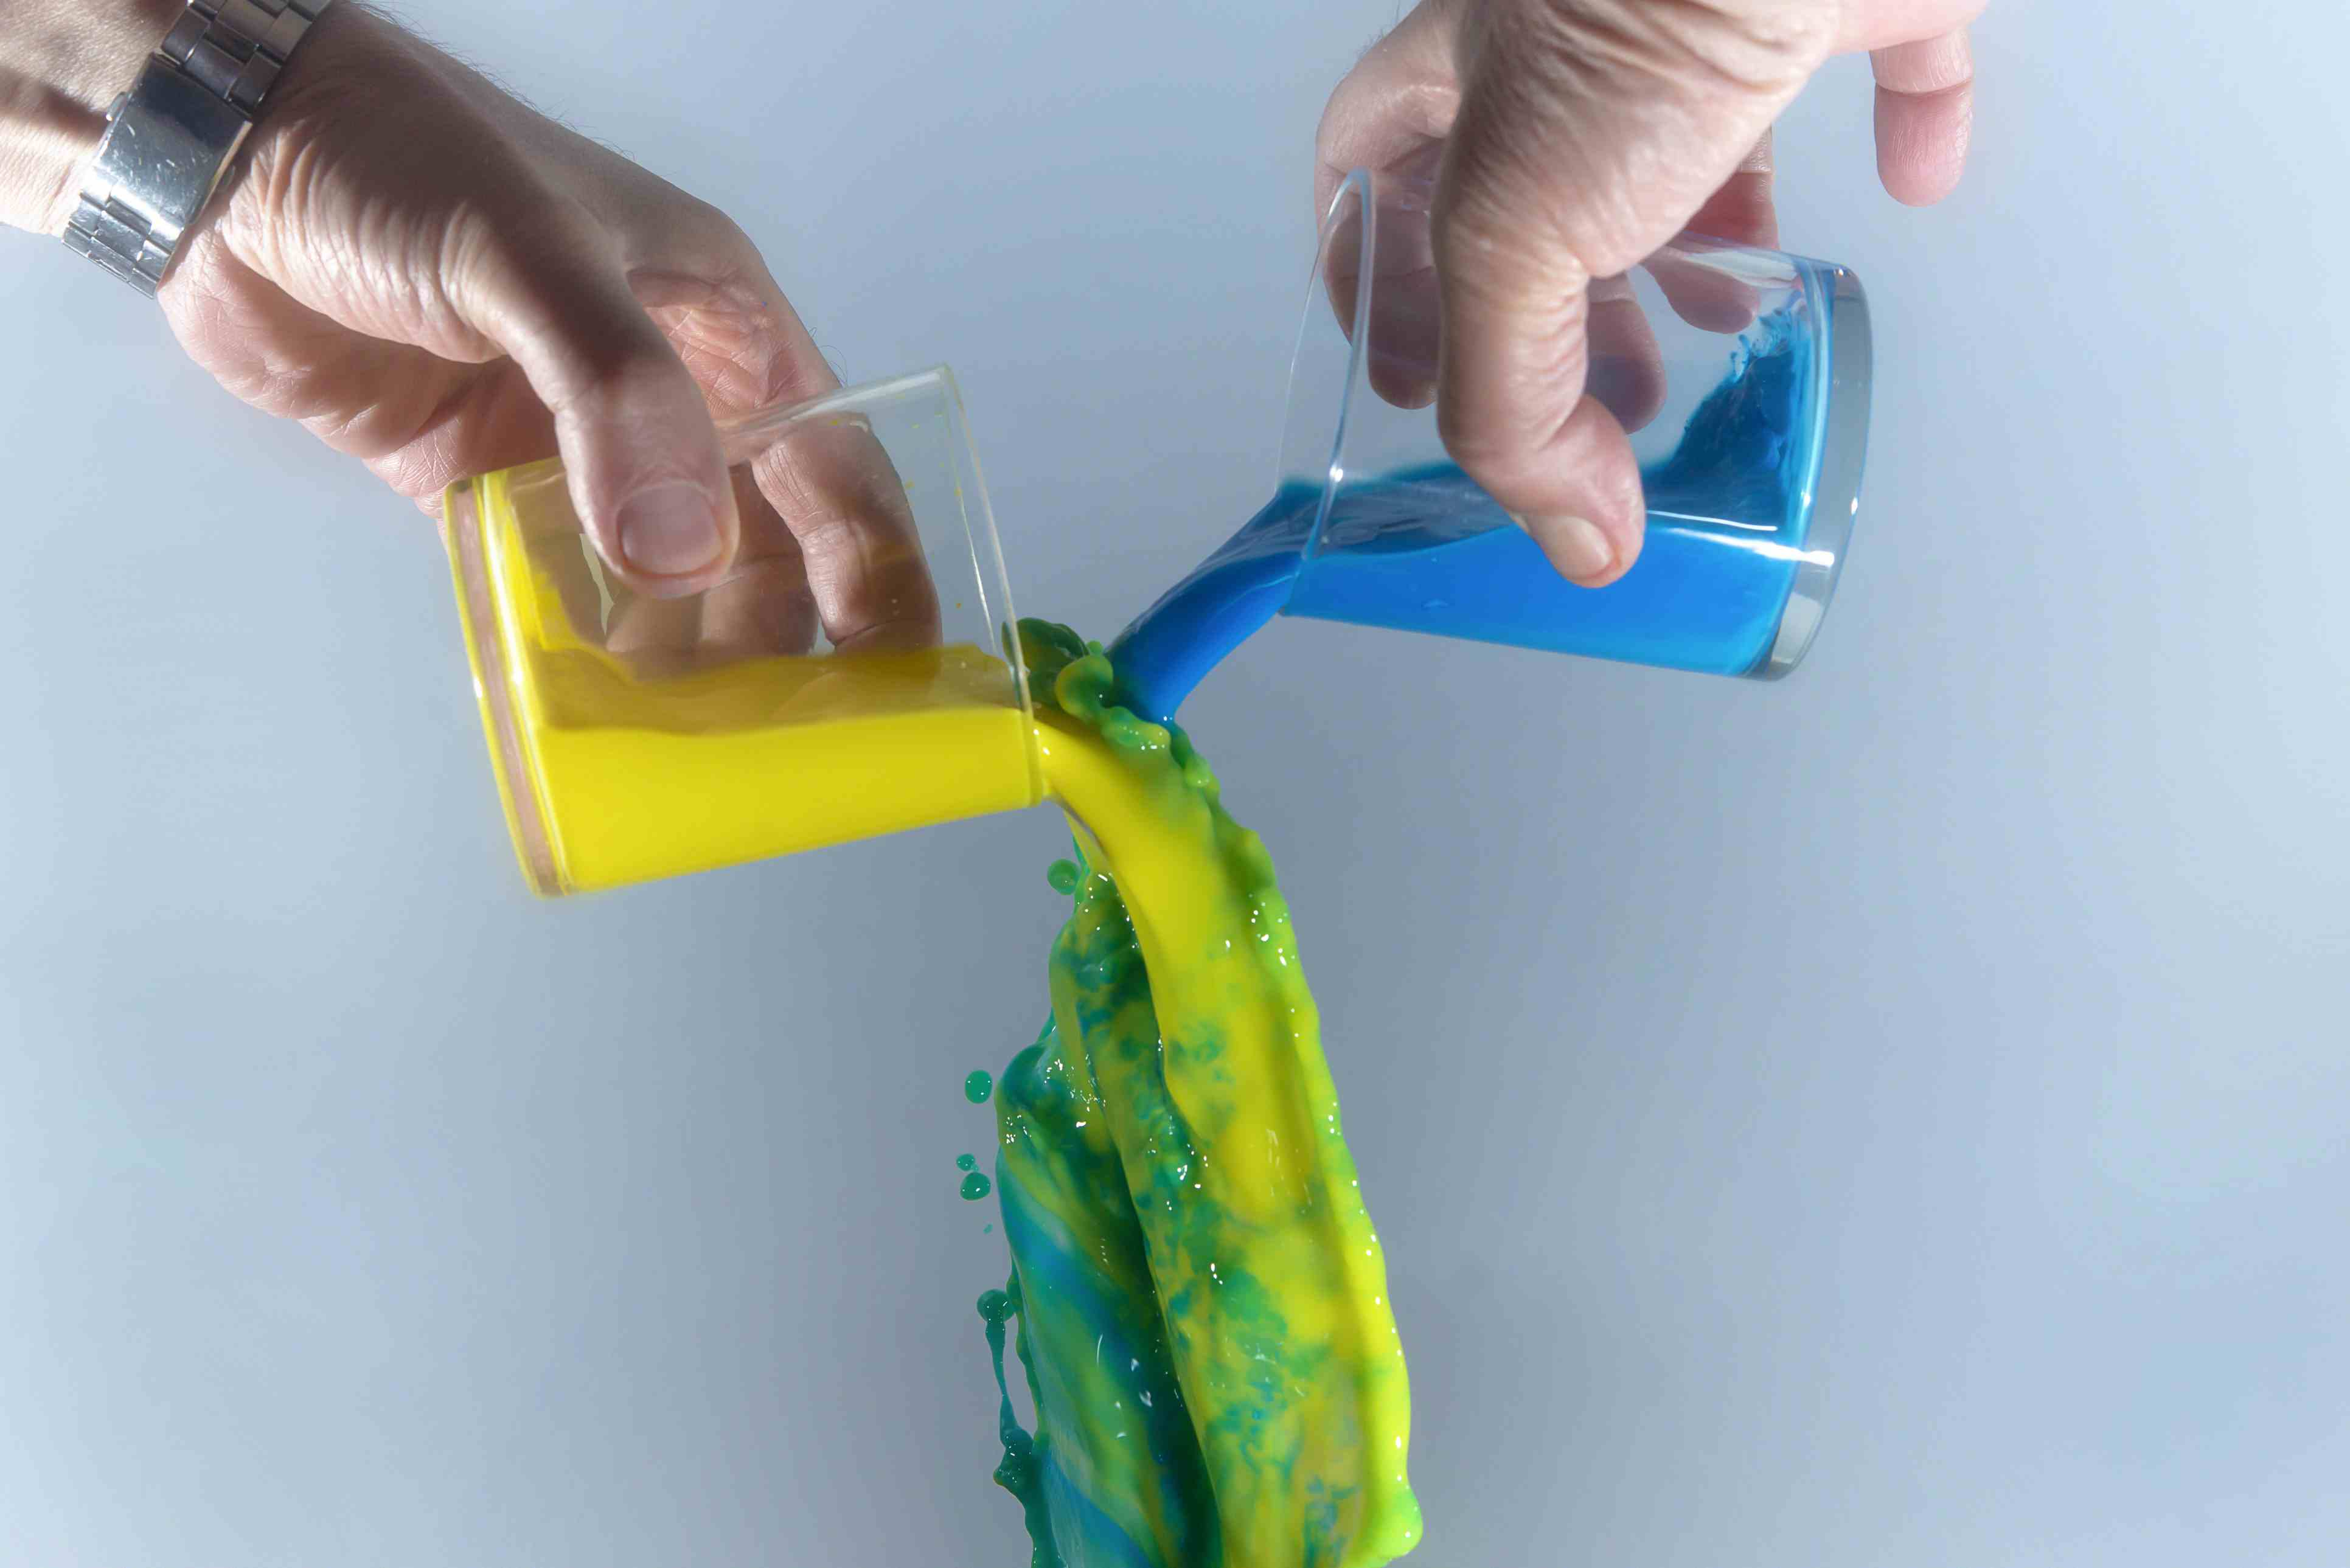 Mixing yellow and blue pigments produces green, not yellowish blue.